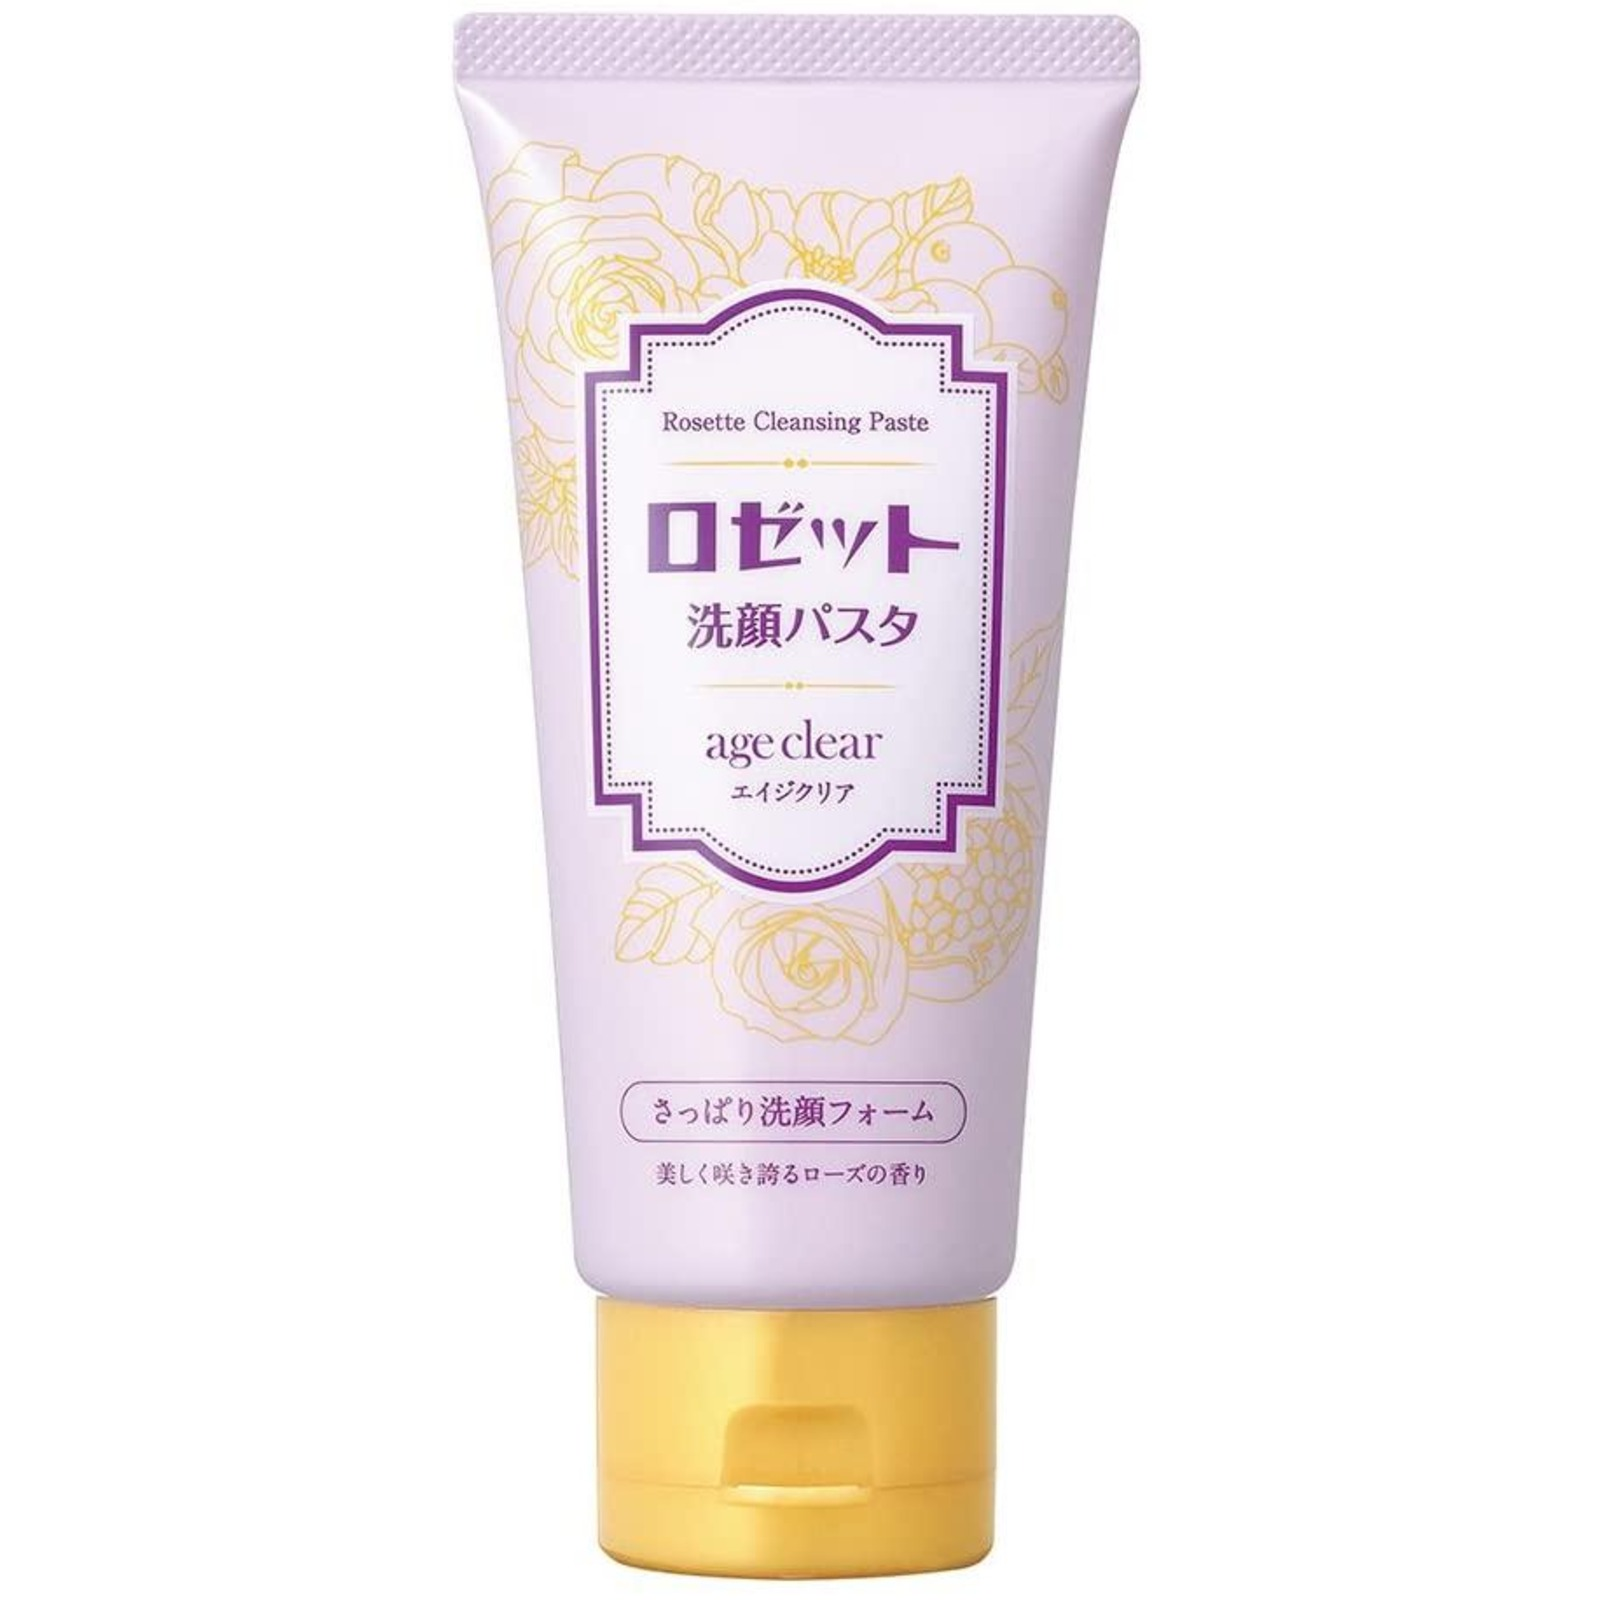 Rosette Rosette Face Wash Pasta Age Clear Refreshing